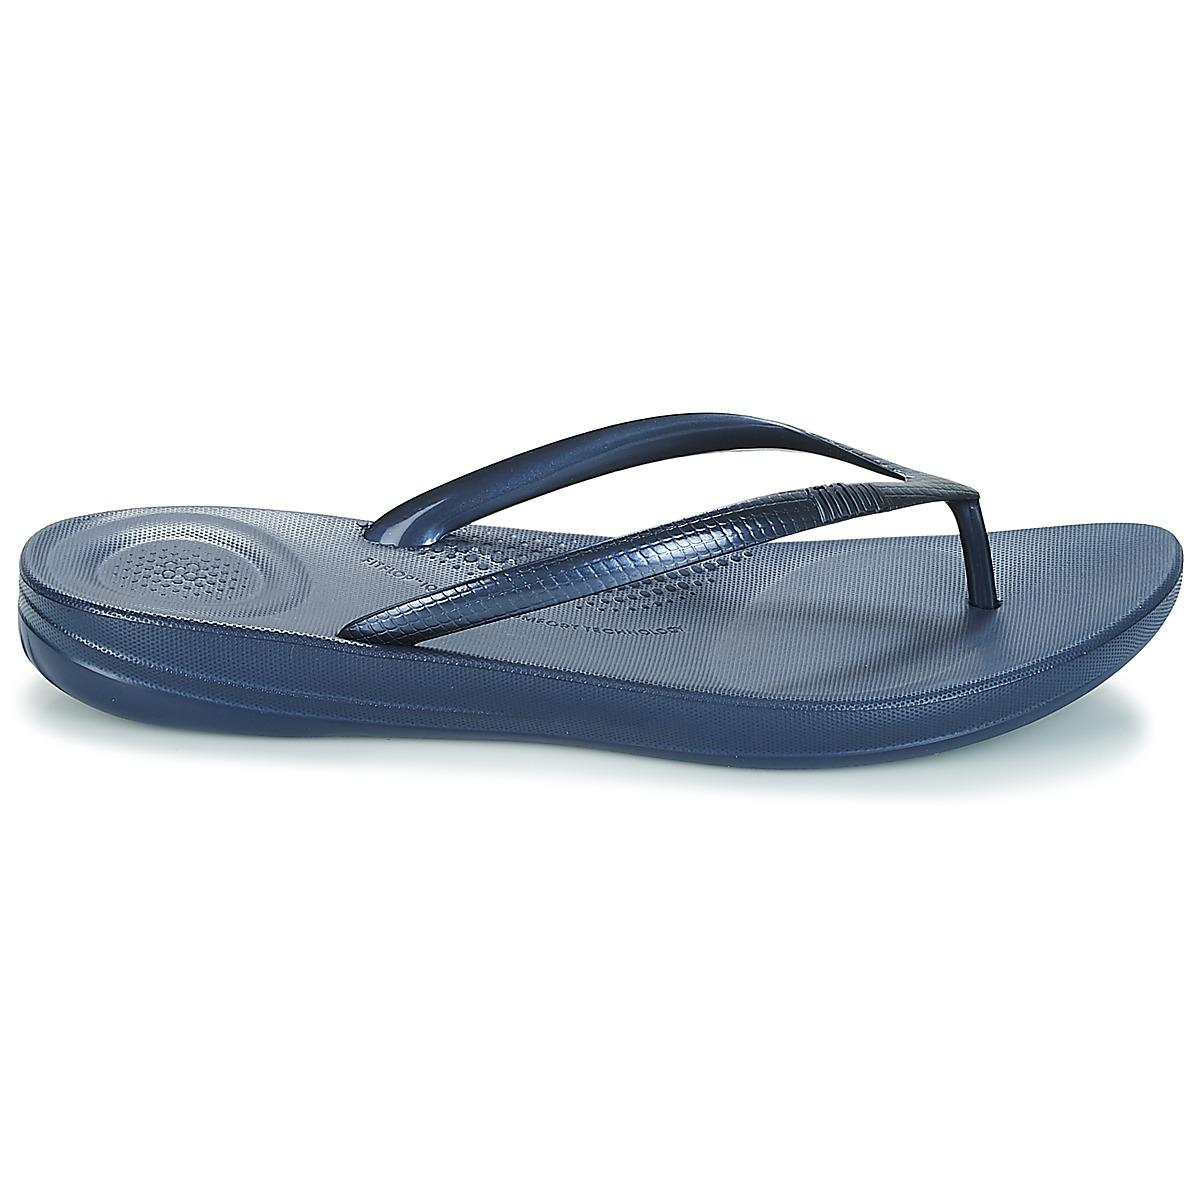 3c730db9e300c Fitflop - Iqushion Ergonomic Flip-flops Women s Flip Flops   Sandals  (shoes) In. View fullscreen